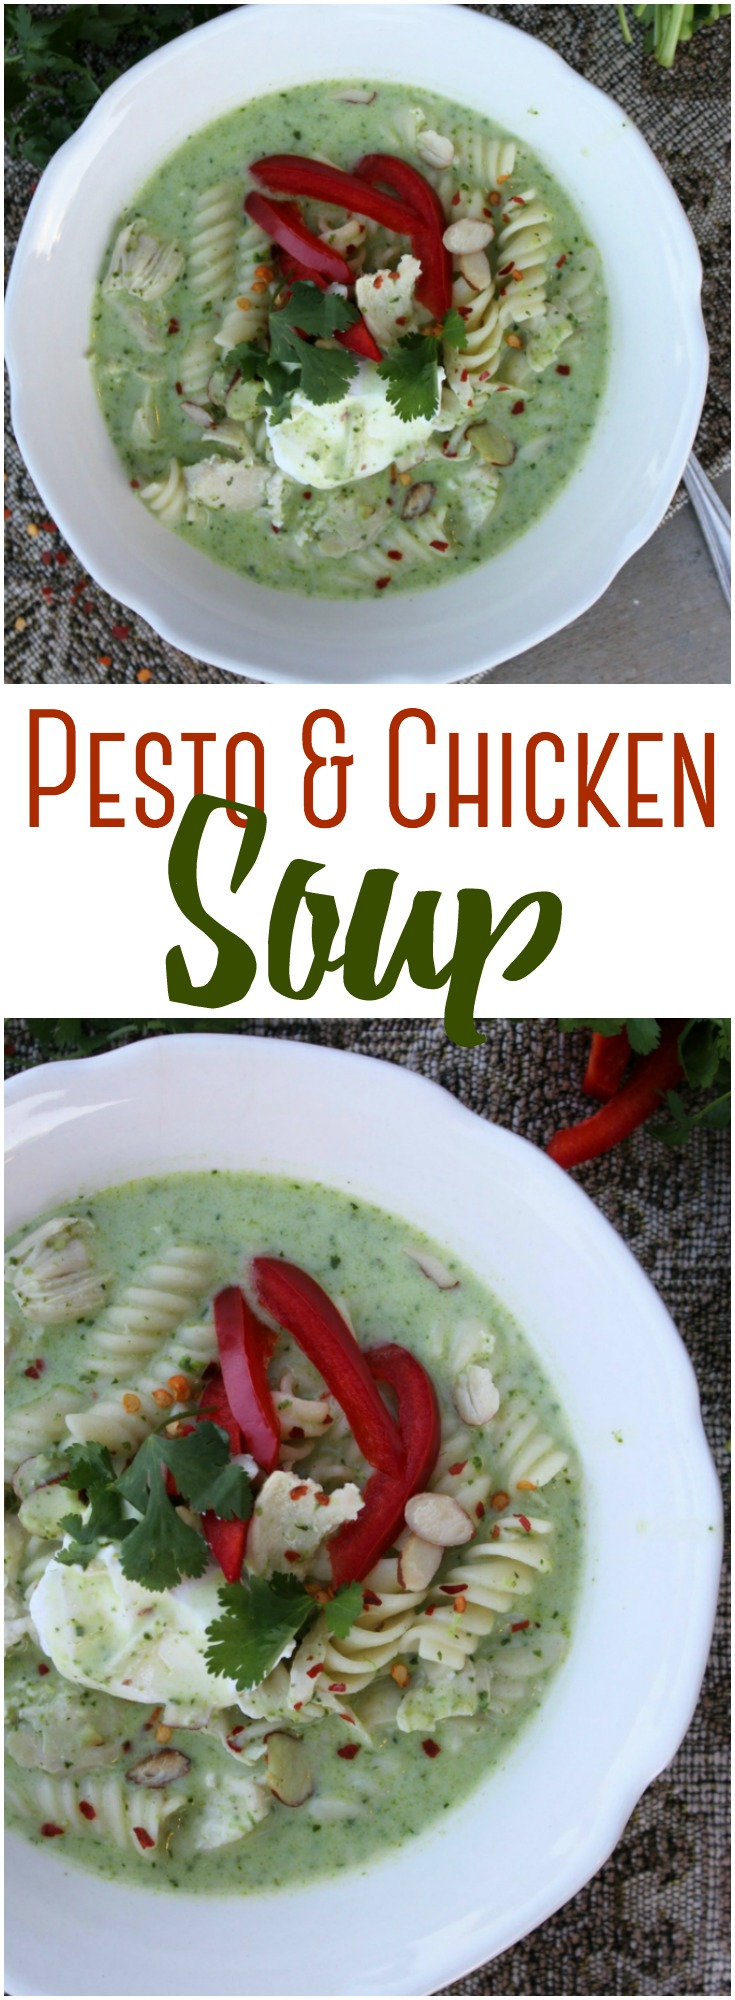 Combine garden fresh pesto with chicken to make this deliciously simple yet flavorful soup in the Instant Pot or on the stove top! #Pesto #Soup #InstantPot #Chicken #healthy